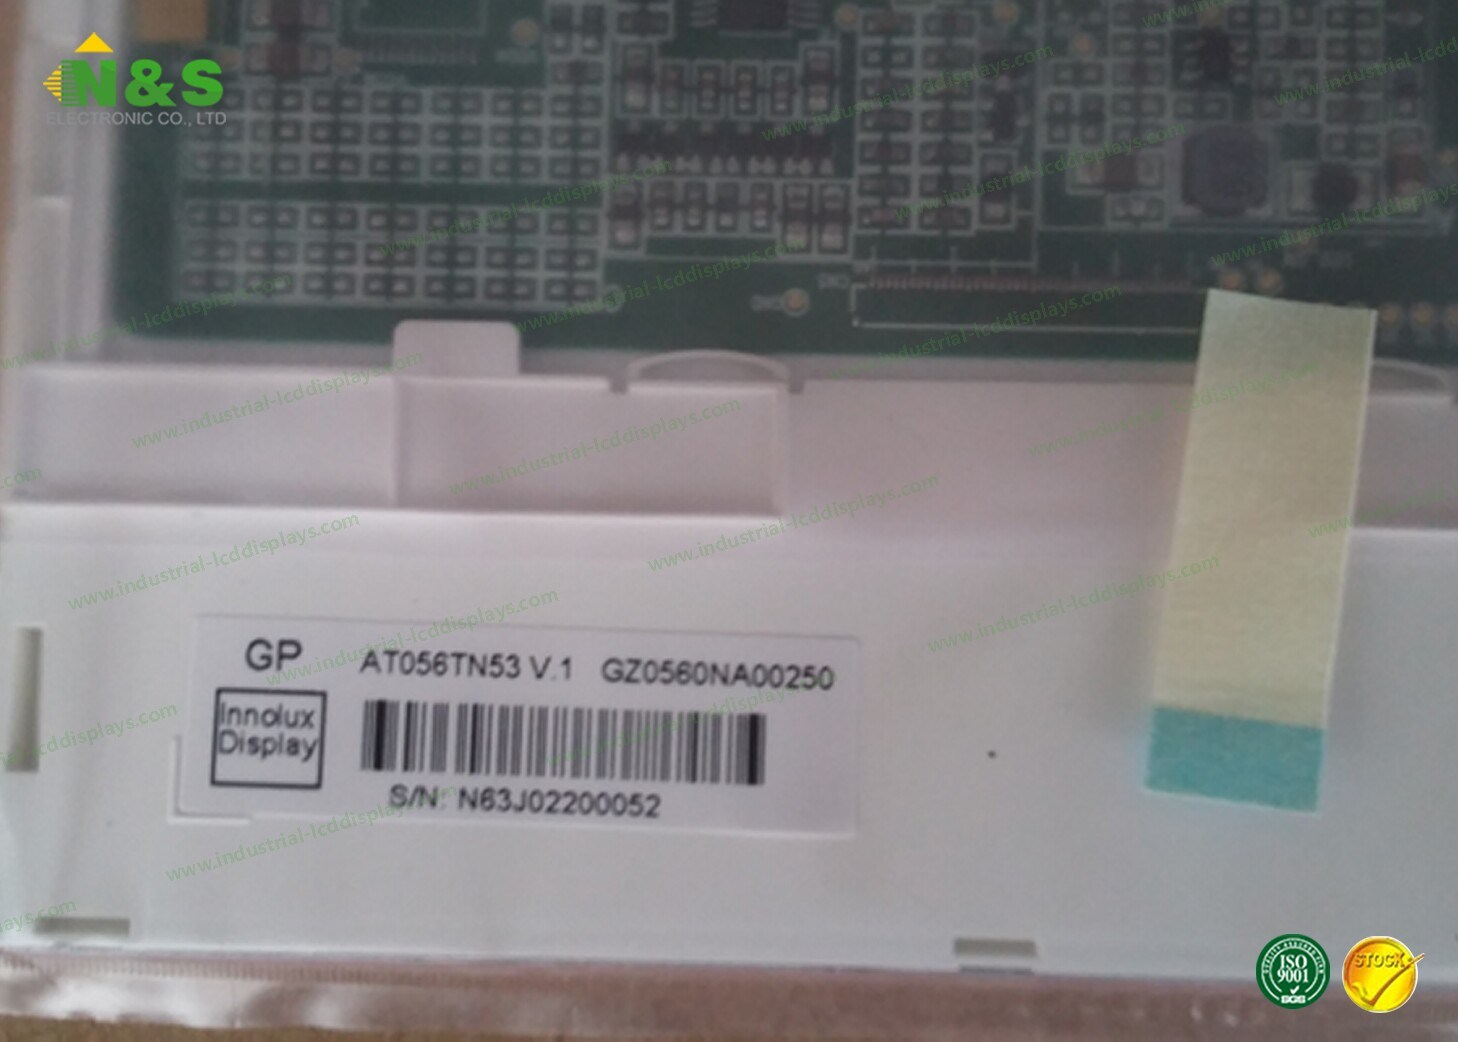 At056tn53 V. 1 5.6 Inch TFT LCD Module Original Brand